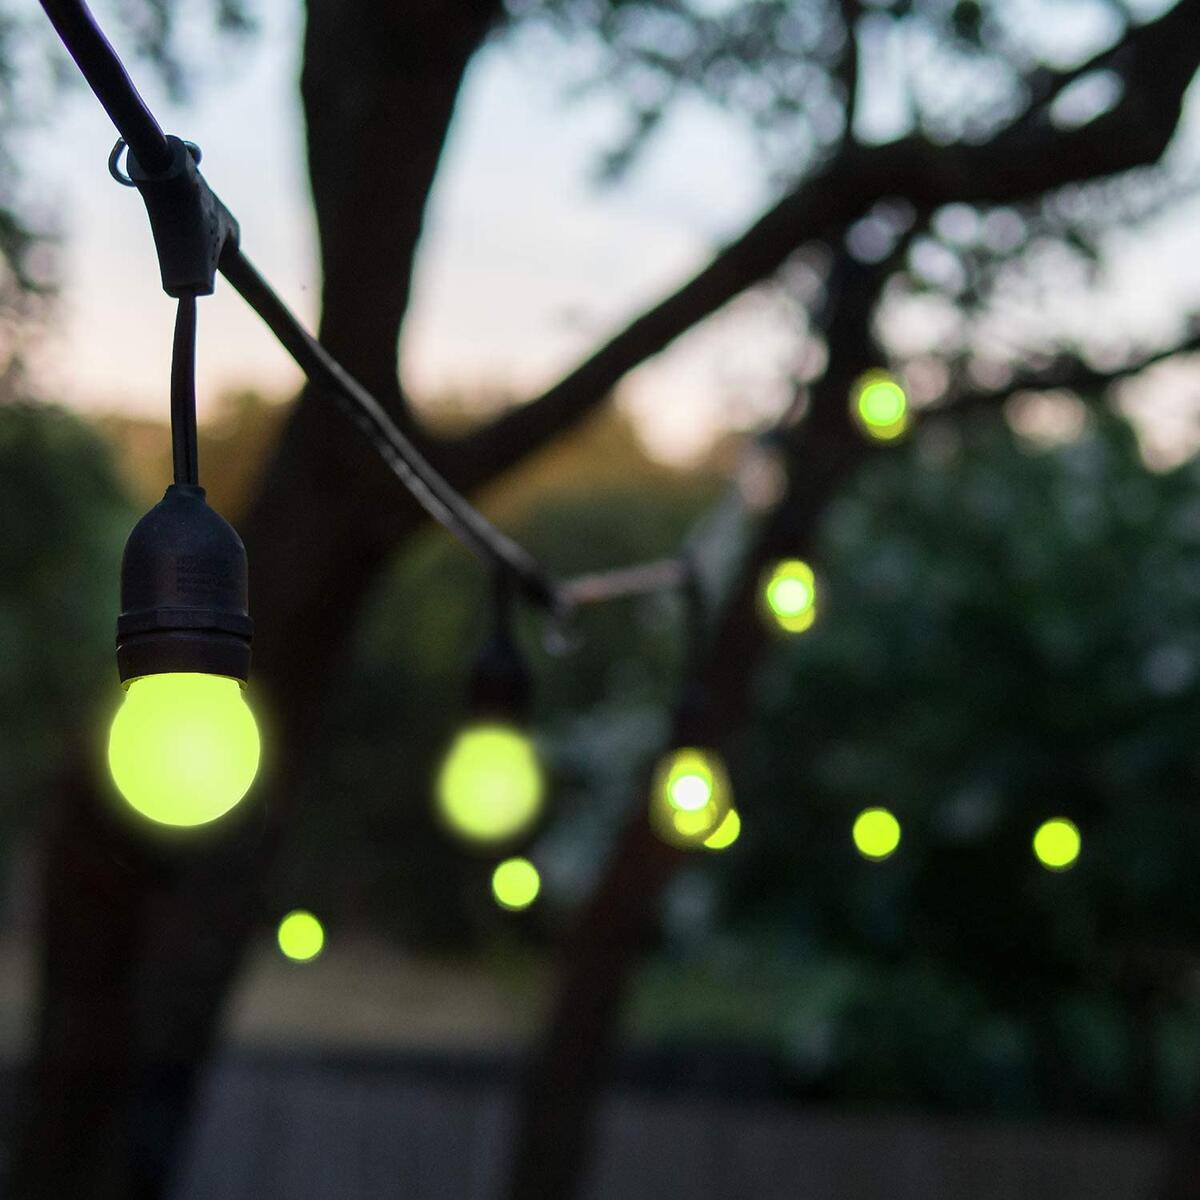 BECCALIGHTING Outdoor Color Changing String Lights with Remote RGB Dimmable Hanging LED Landscape Decoration Lighting Color Changing String Lights Backyard Garden 30ft 30 Feet